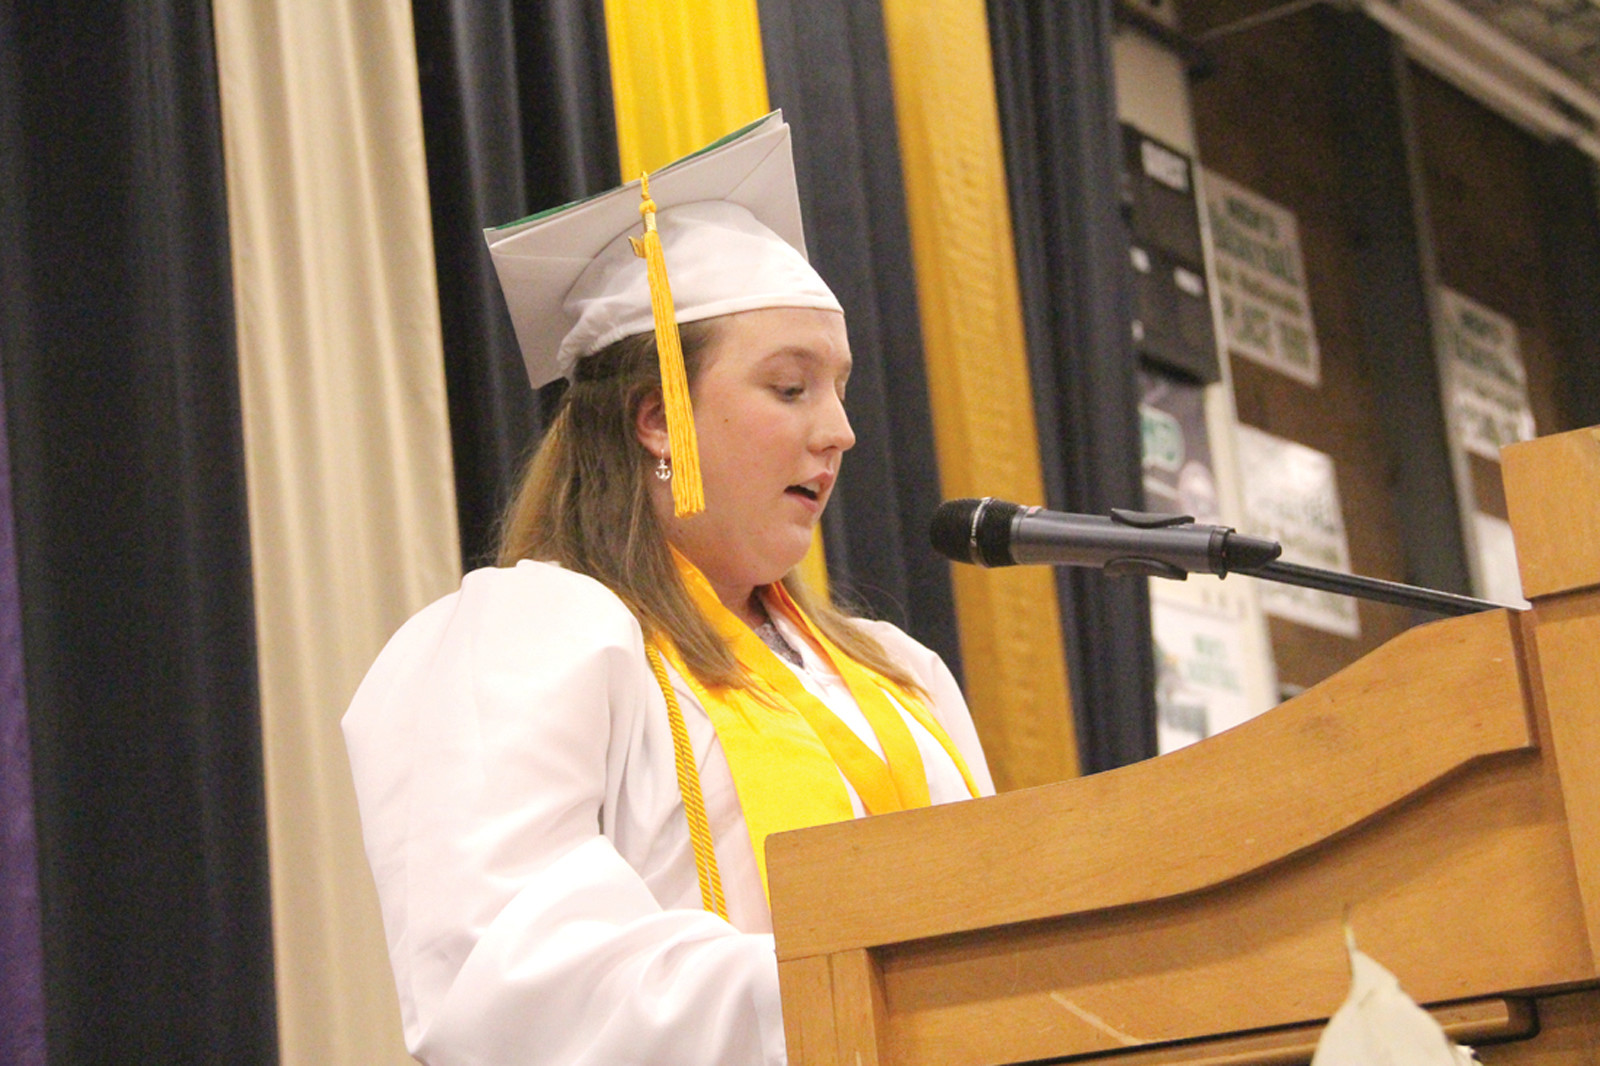 HAVE CONFIDENCE: Valedictorian Alexandrea C. Pouliot, who will be attending MIT in the fall, urged her classmates to have the confidence to be themselves.